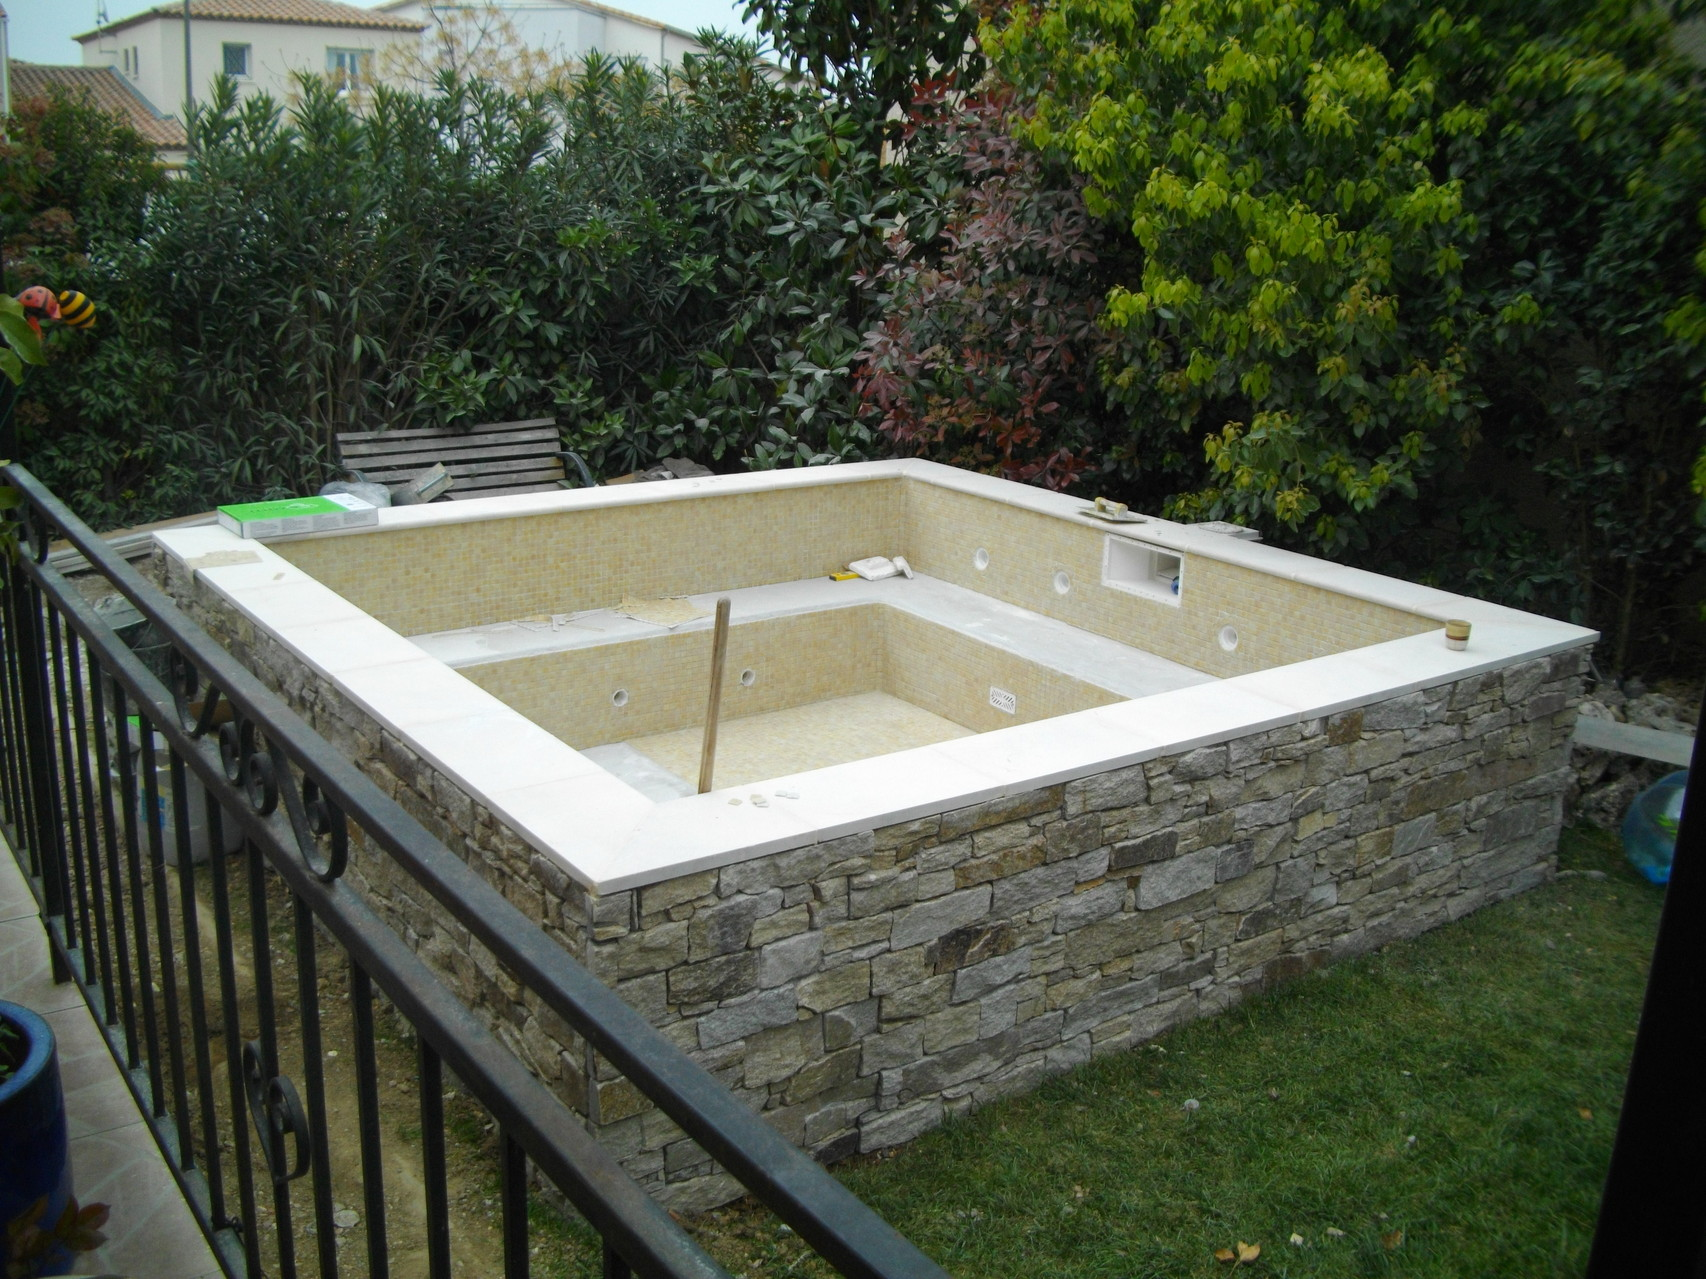 Constructeur de piscines et spas 0660978914 piscine kachou for Construction piscine